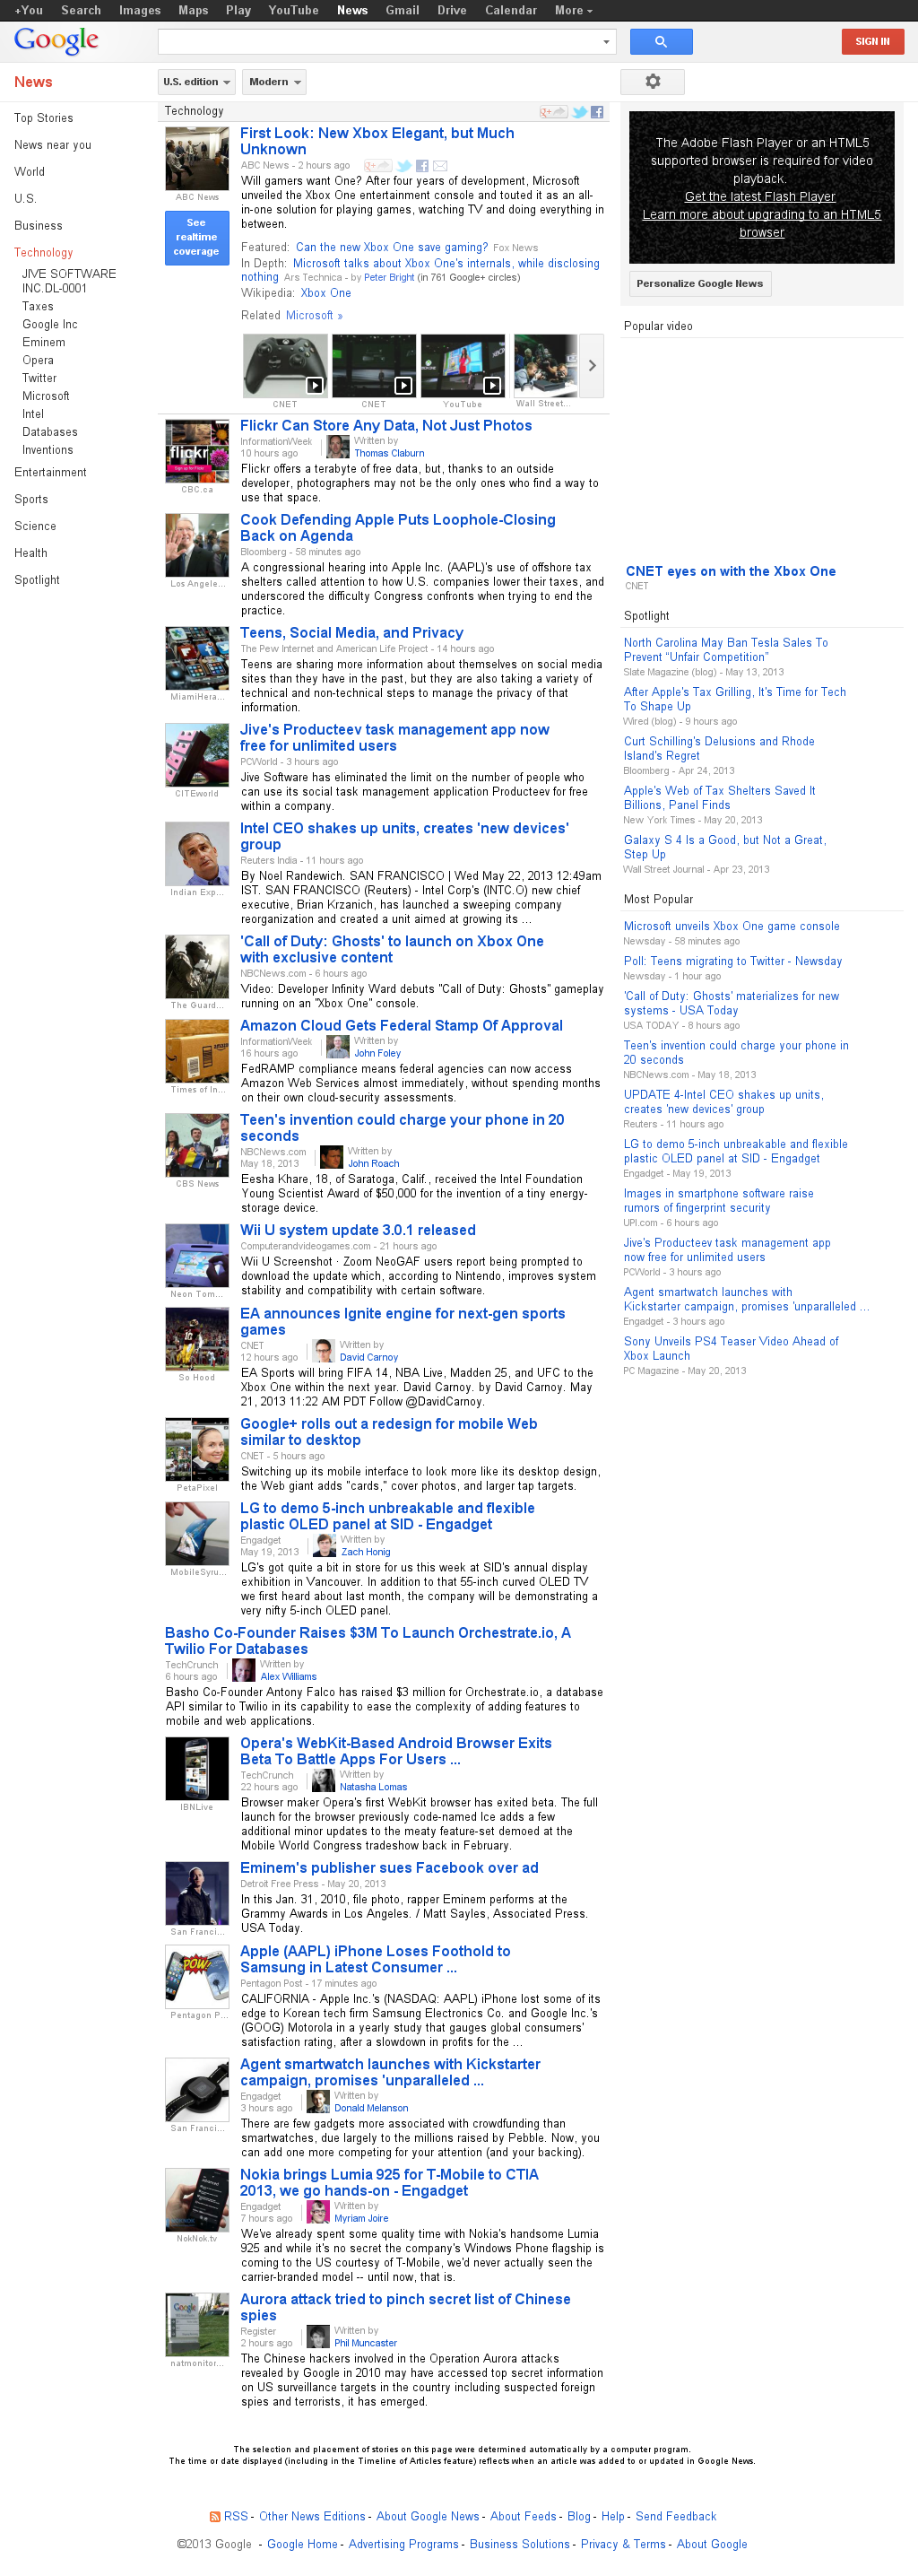 Google News: Technology at Wednesday May 22, 2013, 7:08 a.m. UTC